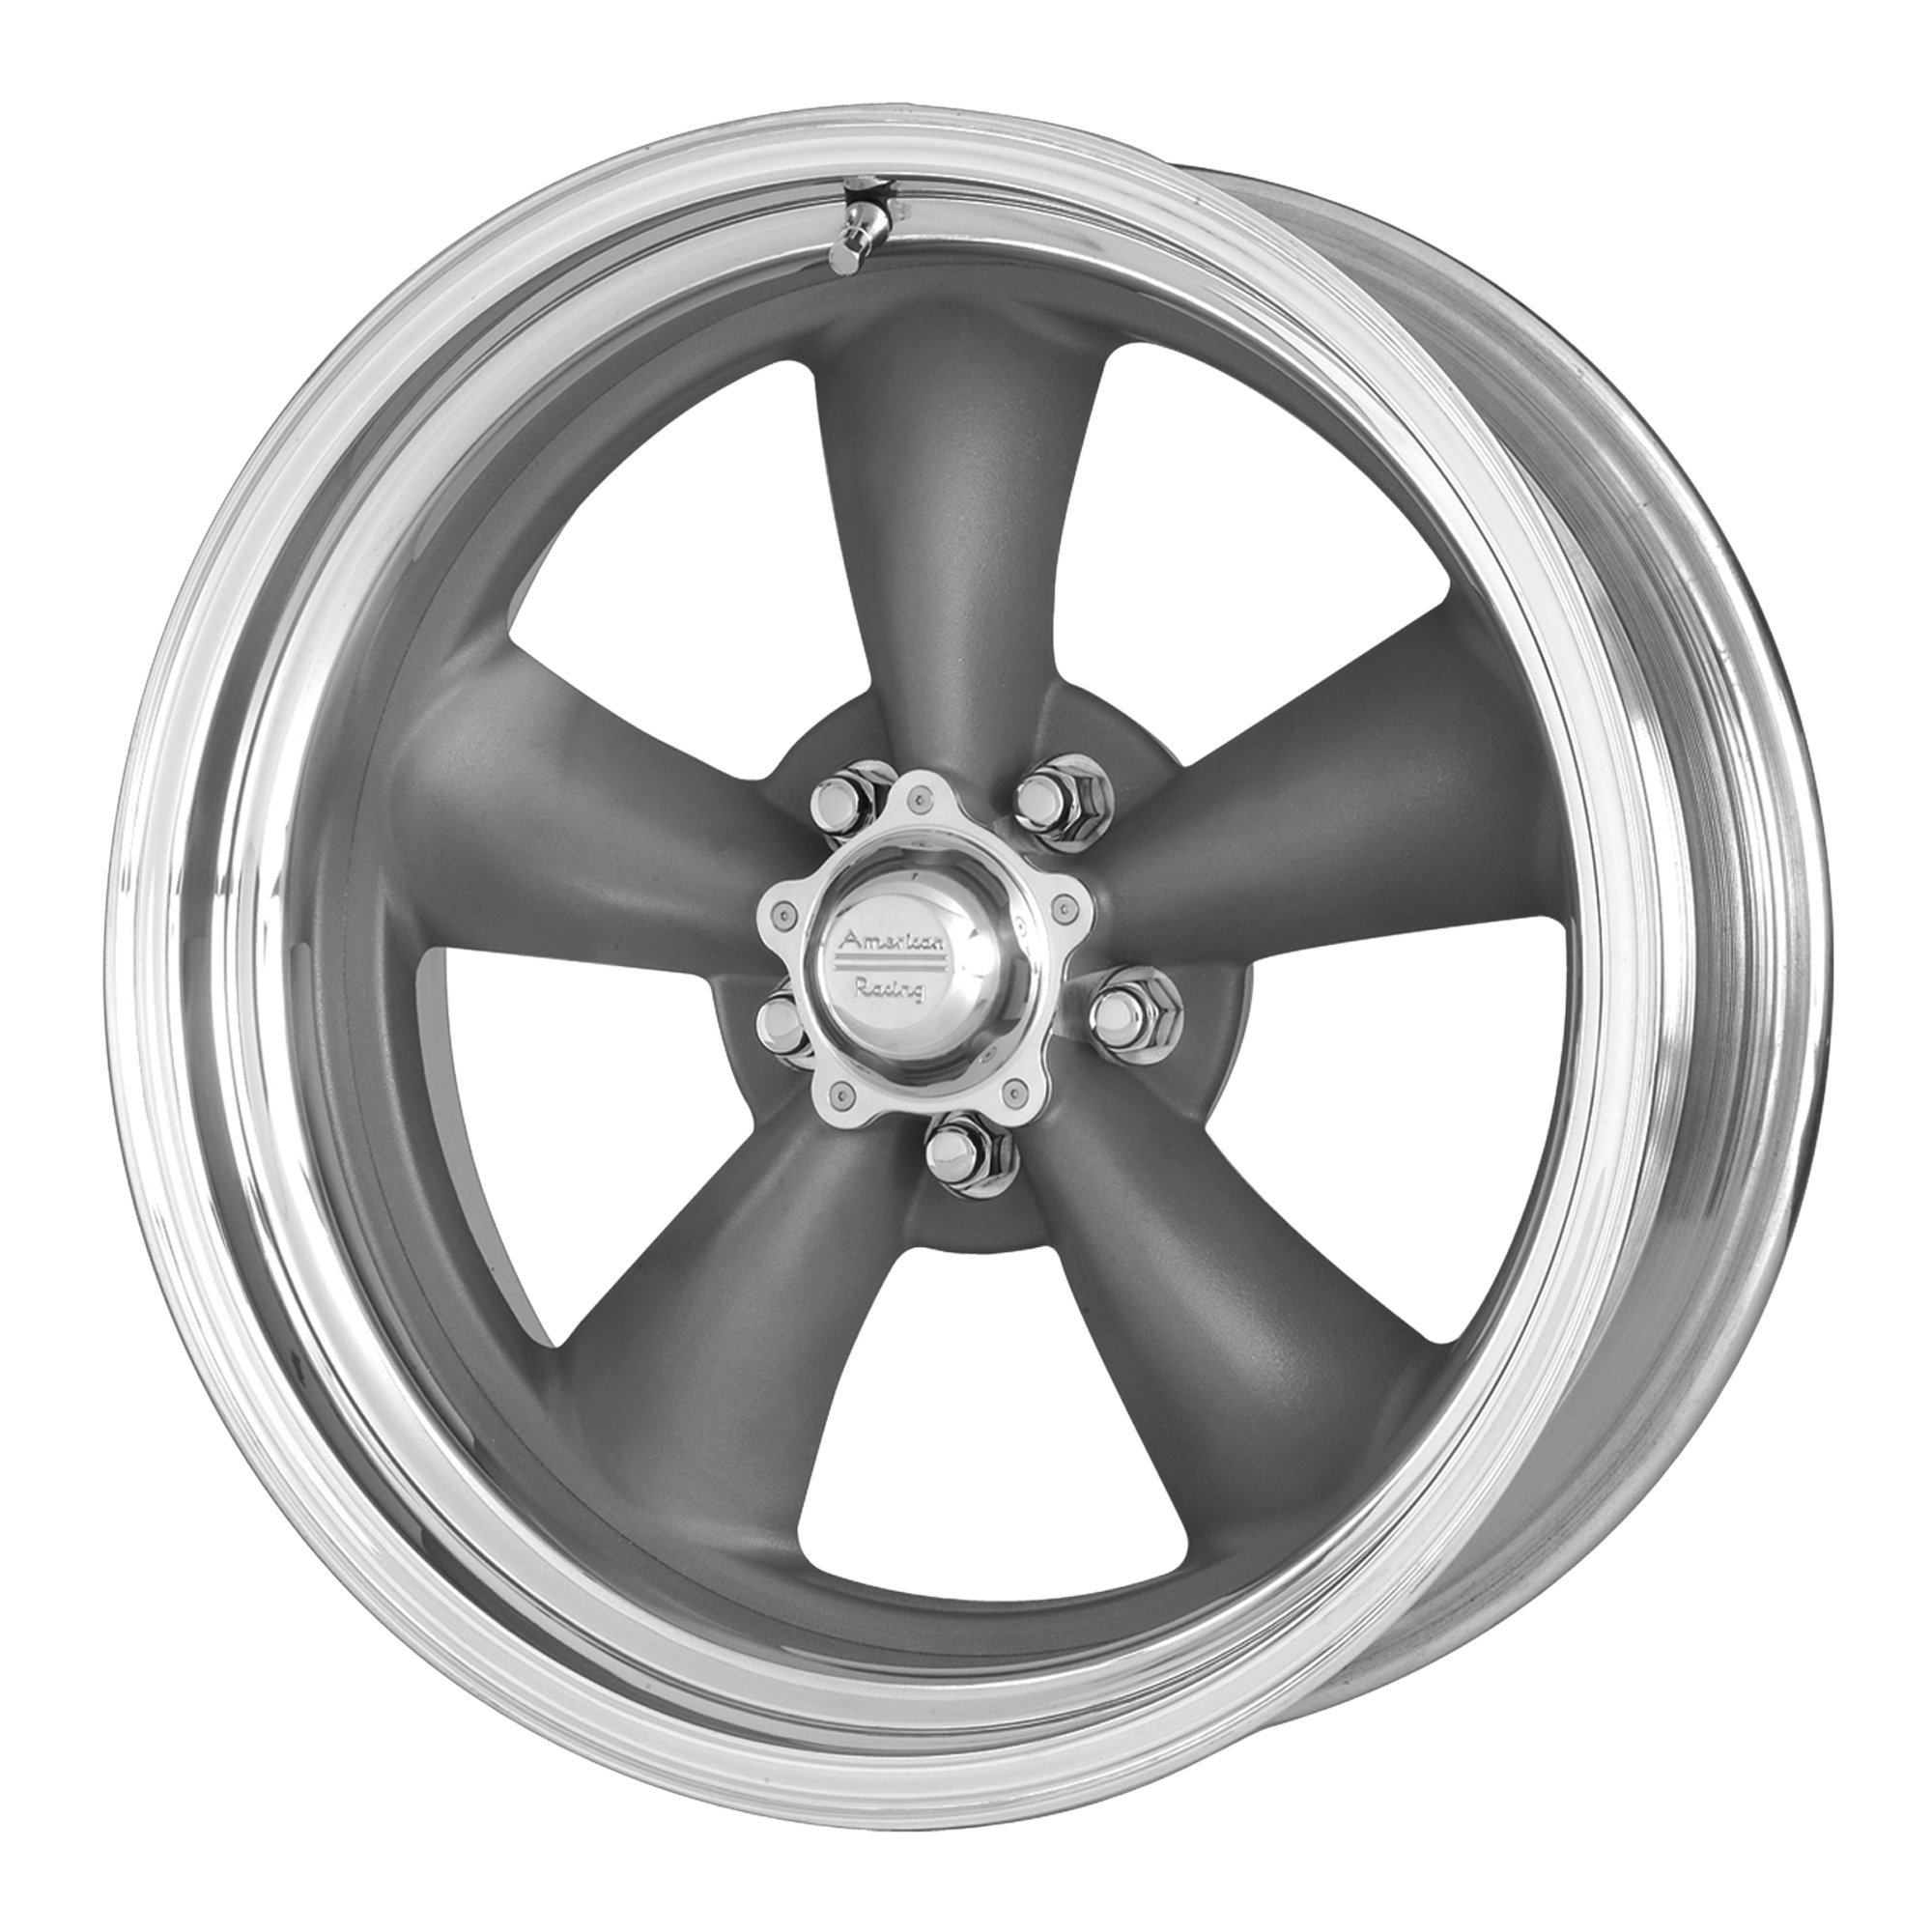 American Racing VN215 Classic Torq Thrust II 1 Pc Mag Gray Wheel with Center Polished Barrel (17x7''/5x120.7mm, 00mm offset)